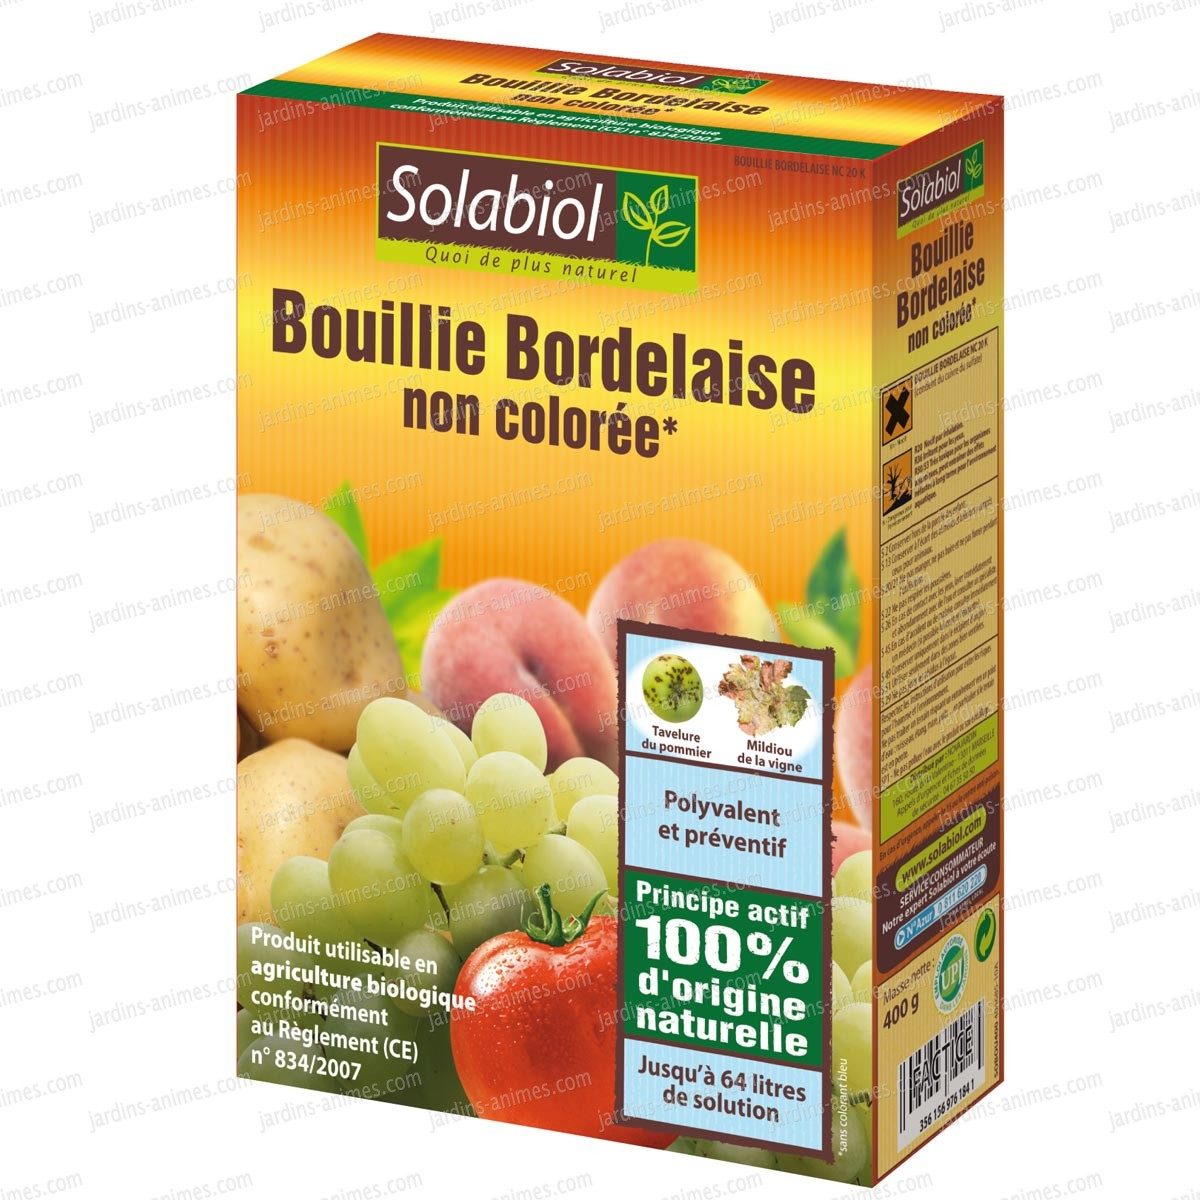 bouillie bordelaise incolore 400g agriculture bio fongicide bio. Black Bedroom Furniture Sets. Home Design Ideas